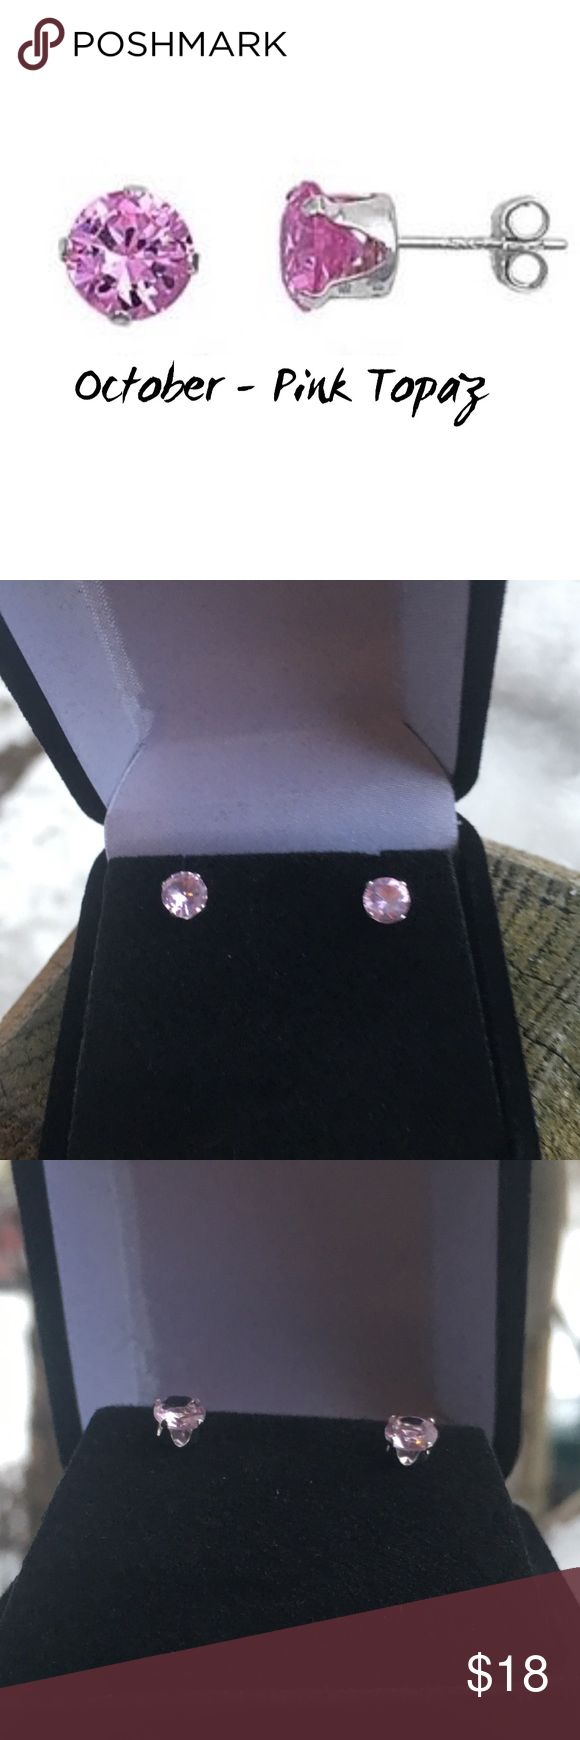 NEW OCTOBER STUDS NEW OCTOBER STUDS ARE SWAROVSKI PINK ELEMENTS SET IN STERLING SILVER WITH BUTTERFLY BACKS MEASURES APPROX 5MM includes black velvet gift box BOUTIQUE Jewelry Earrings